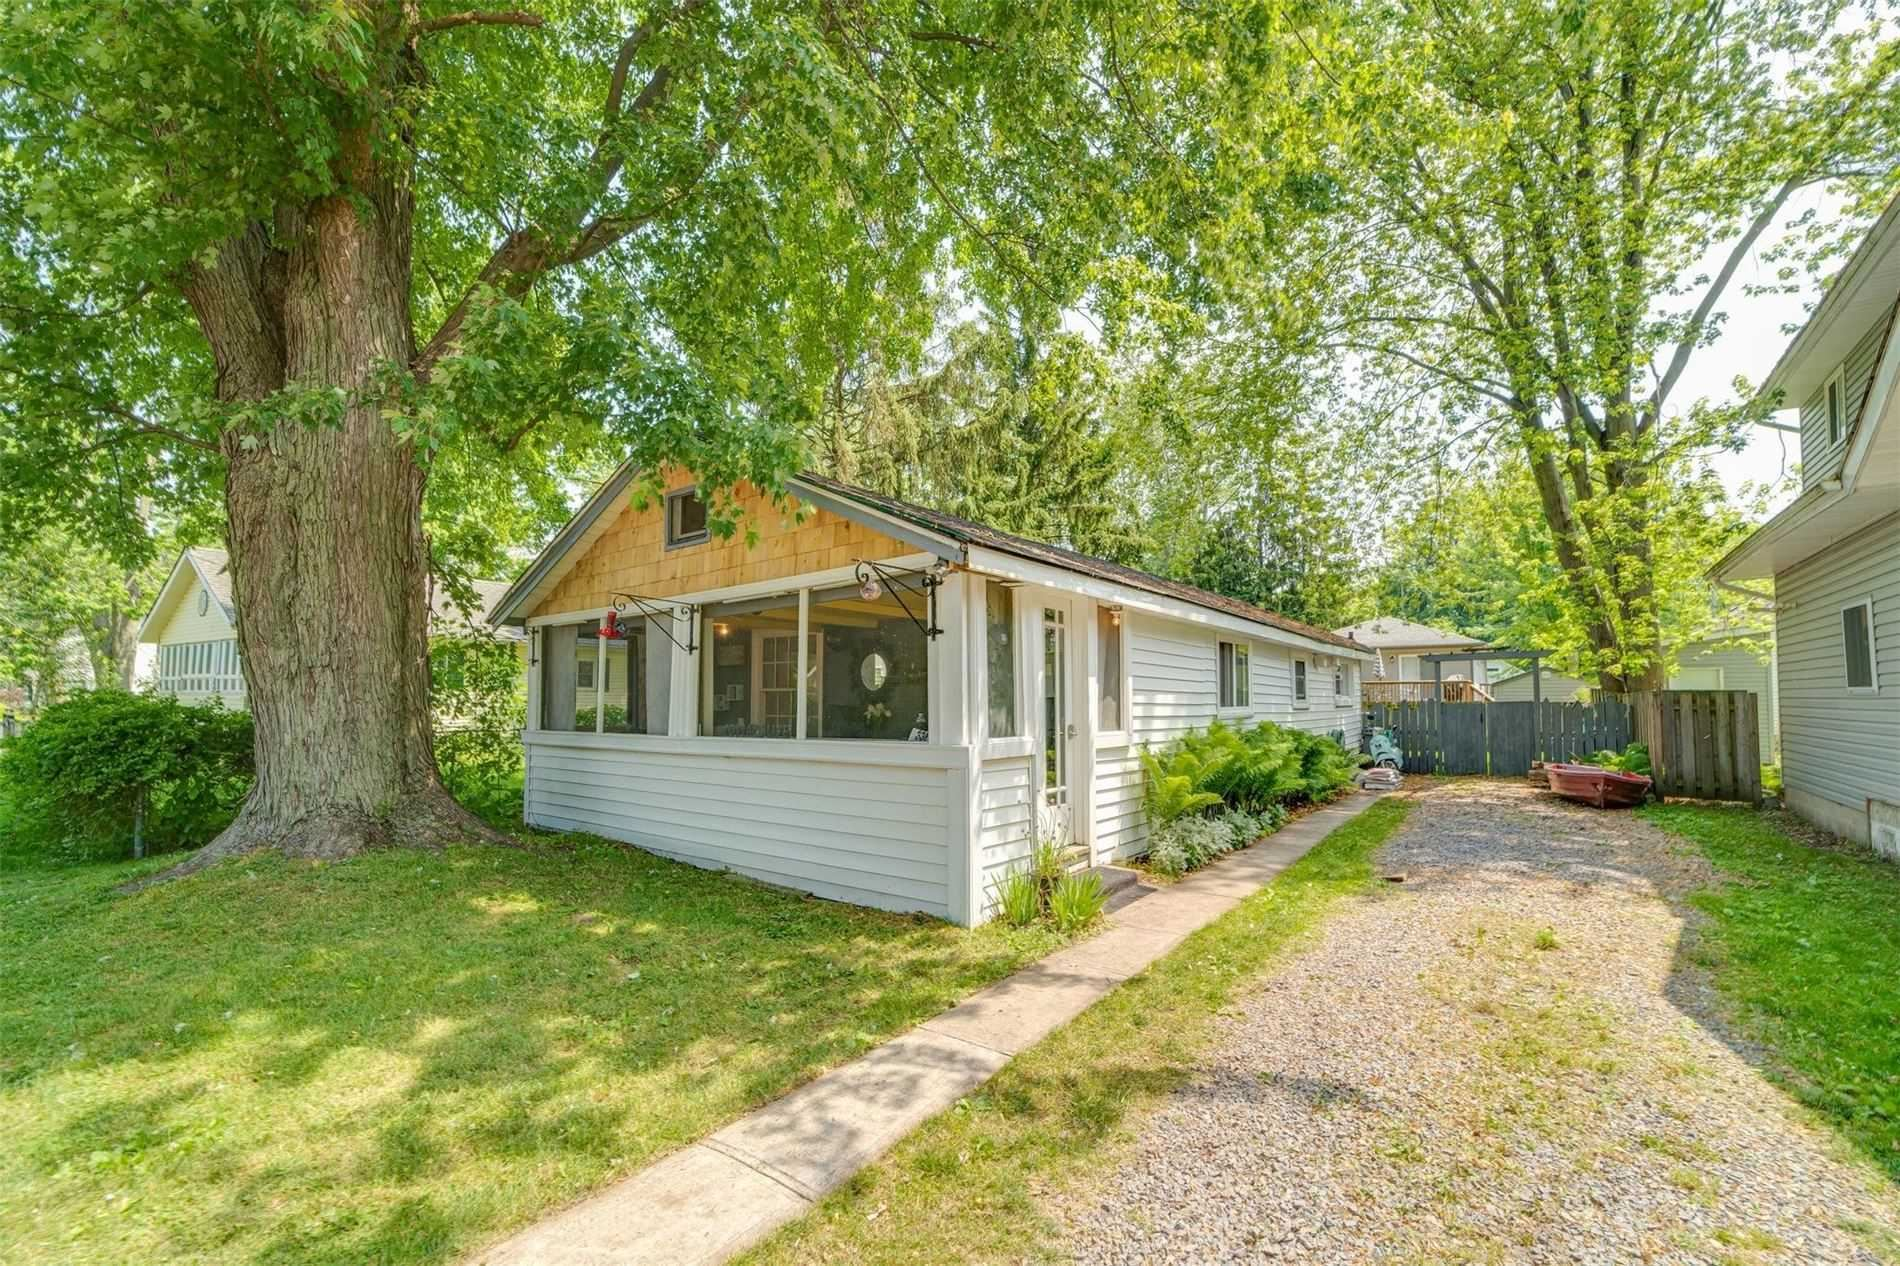 336 Eastwood Ave, Fort Erie, ON L0S 1B0 - MLS#: X5276395